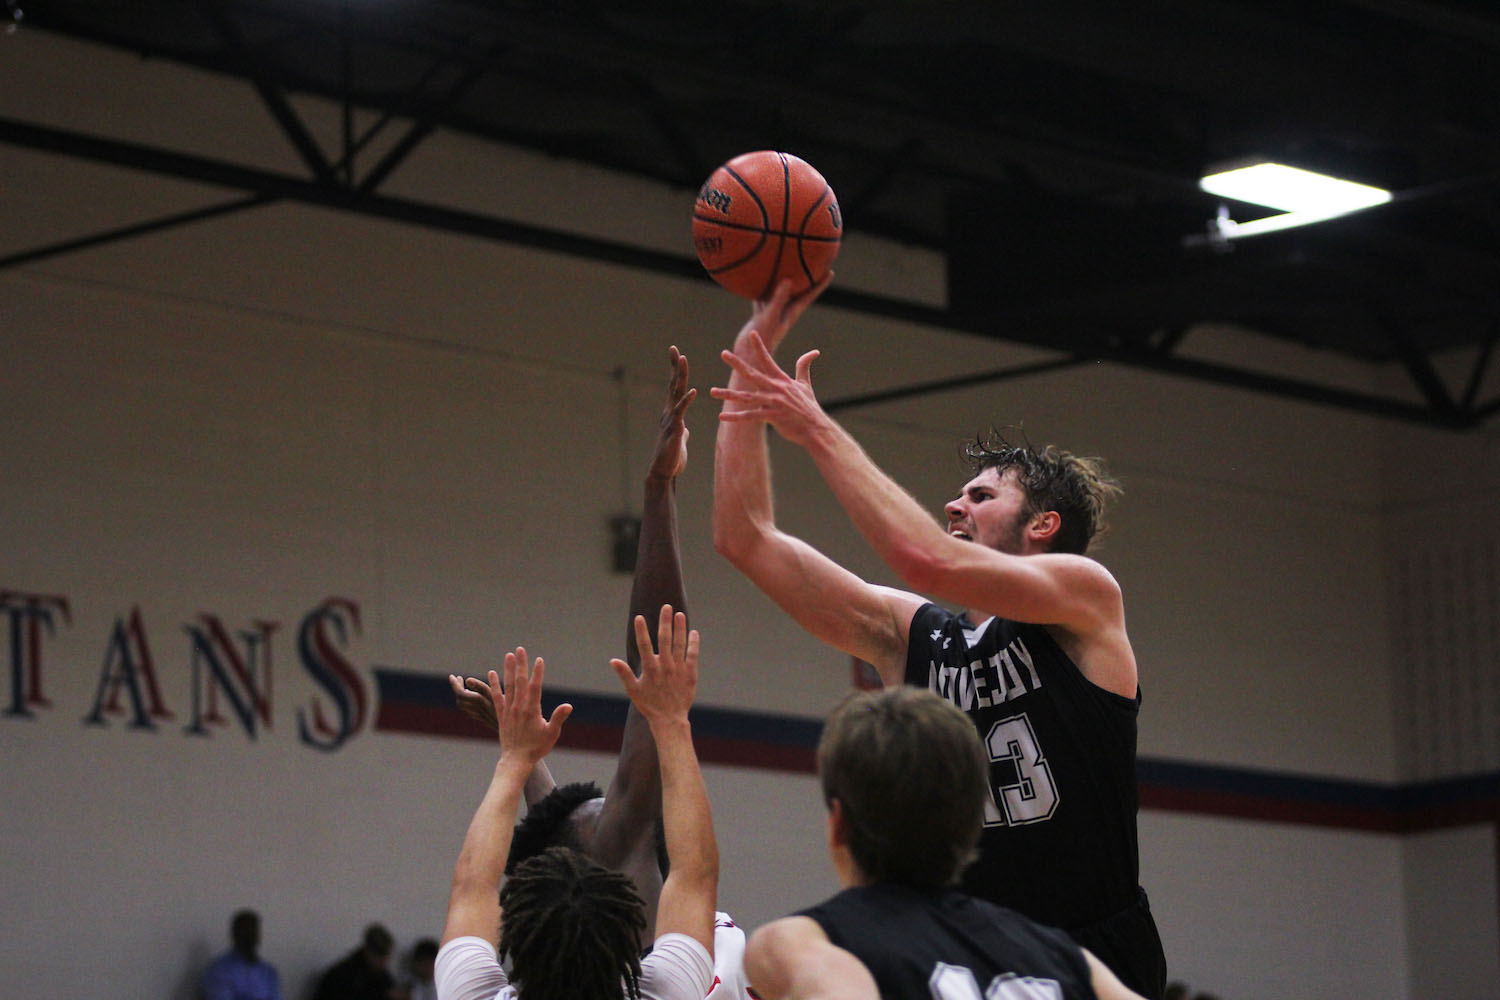 Senior Kyle Olsen elevates over the defense in attempts to make a layup.